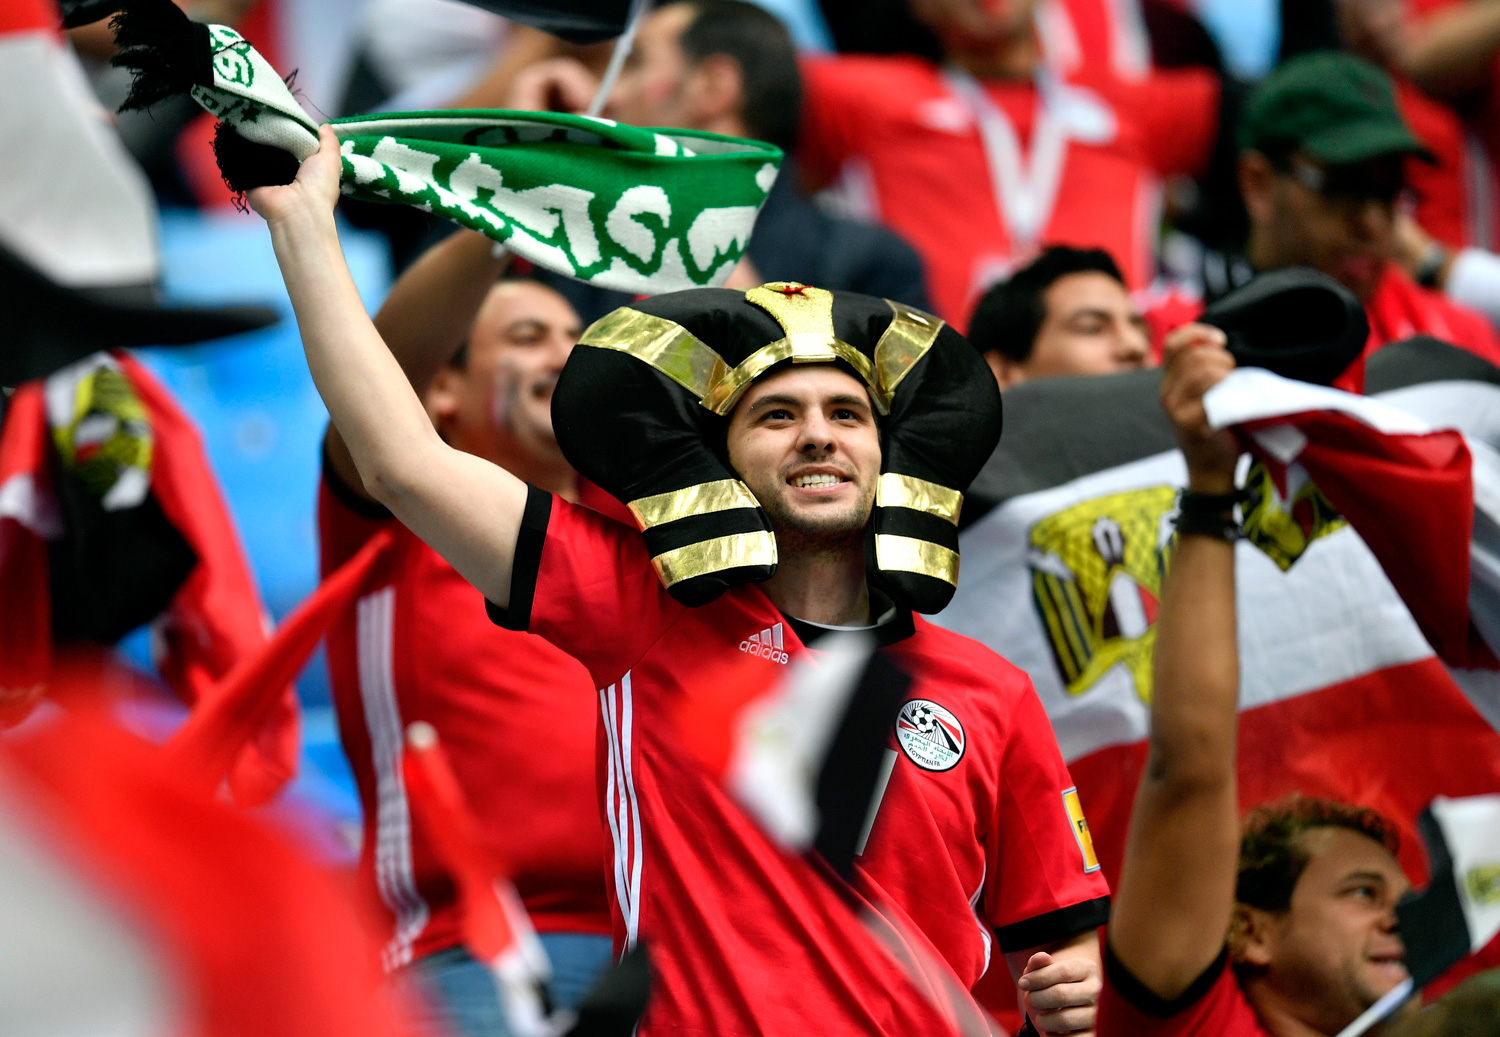 <div class='meta'><div class='origin-logo' data-origin='none'></div><span class='caption-text' data-credit='Martin Meissner/AP'>Supporters cheer prior the group A match between Russia and Egypt at the 2018 soccer World Cup in the St. Petersburg stadium</span></div>